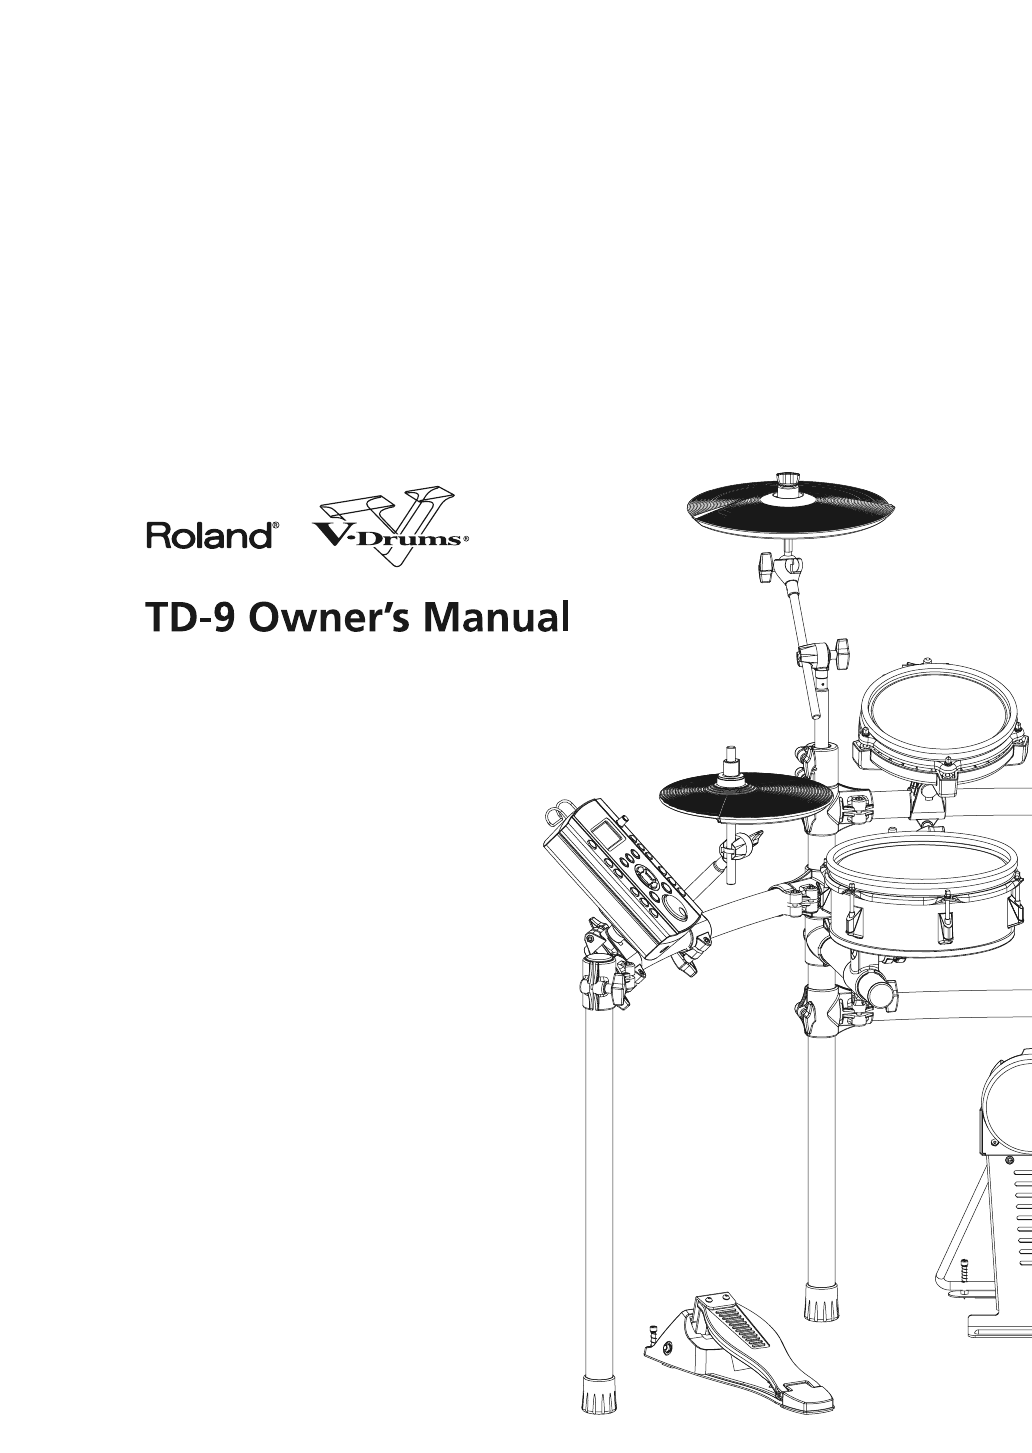 roland drums td 9 user guide manualsonline com rh music manualsonline com roland td 9 manual español roland percussion sound module td-9 manual